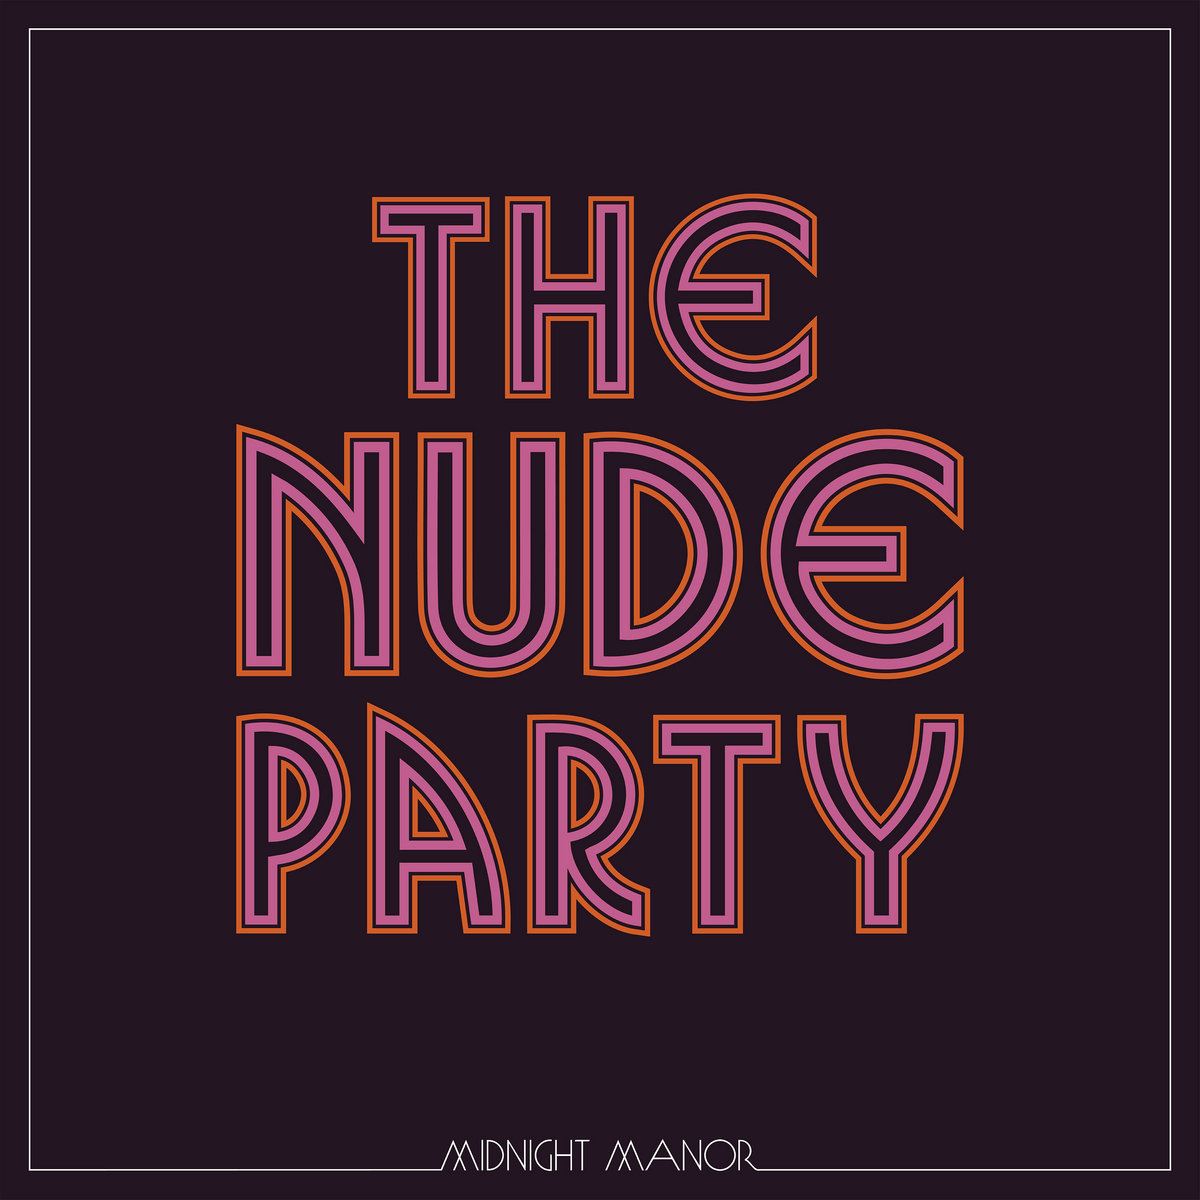 The Nude Party album